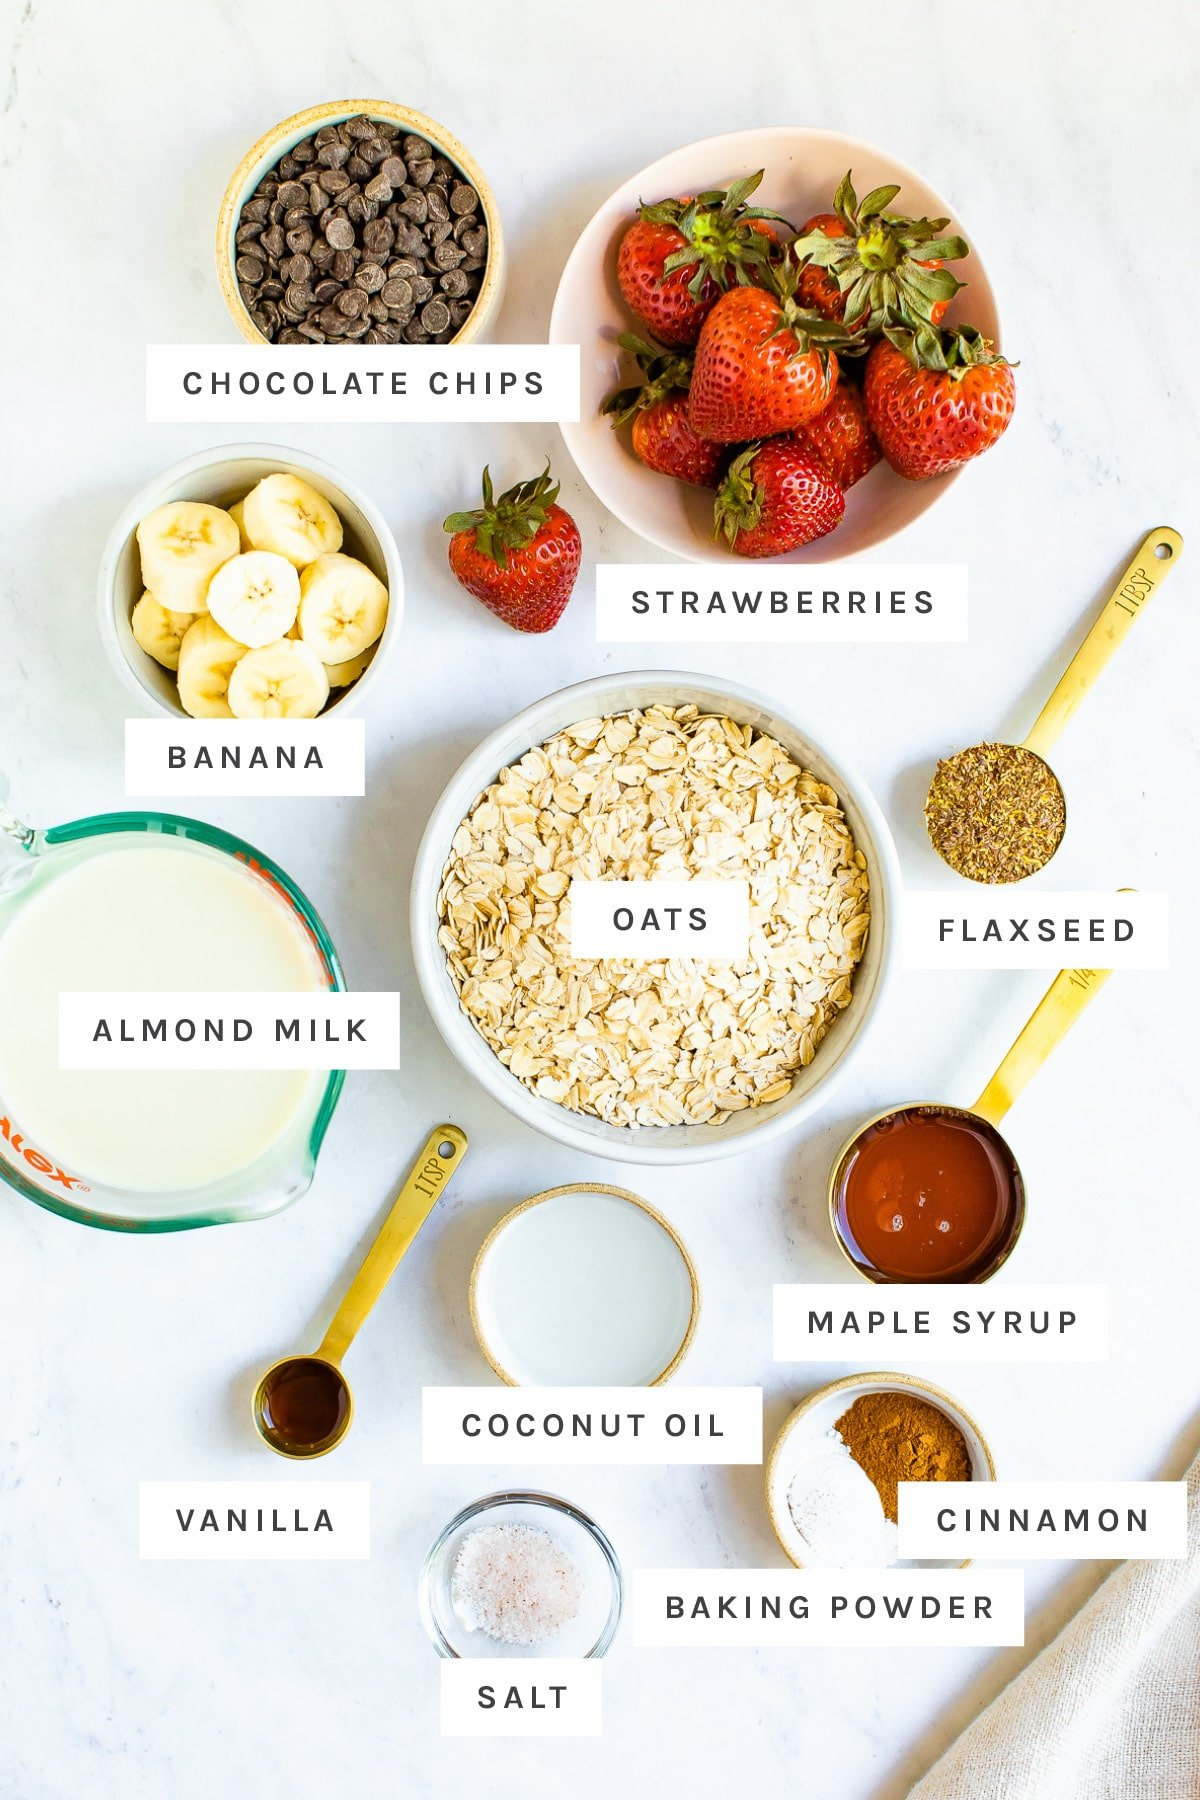 Strawberries, banana, chocolate chips, oats and other ingredients measured out to make strawberry banana baked oatmeal.